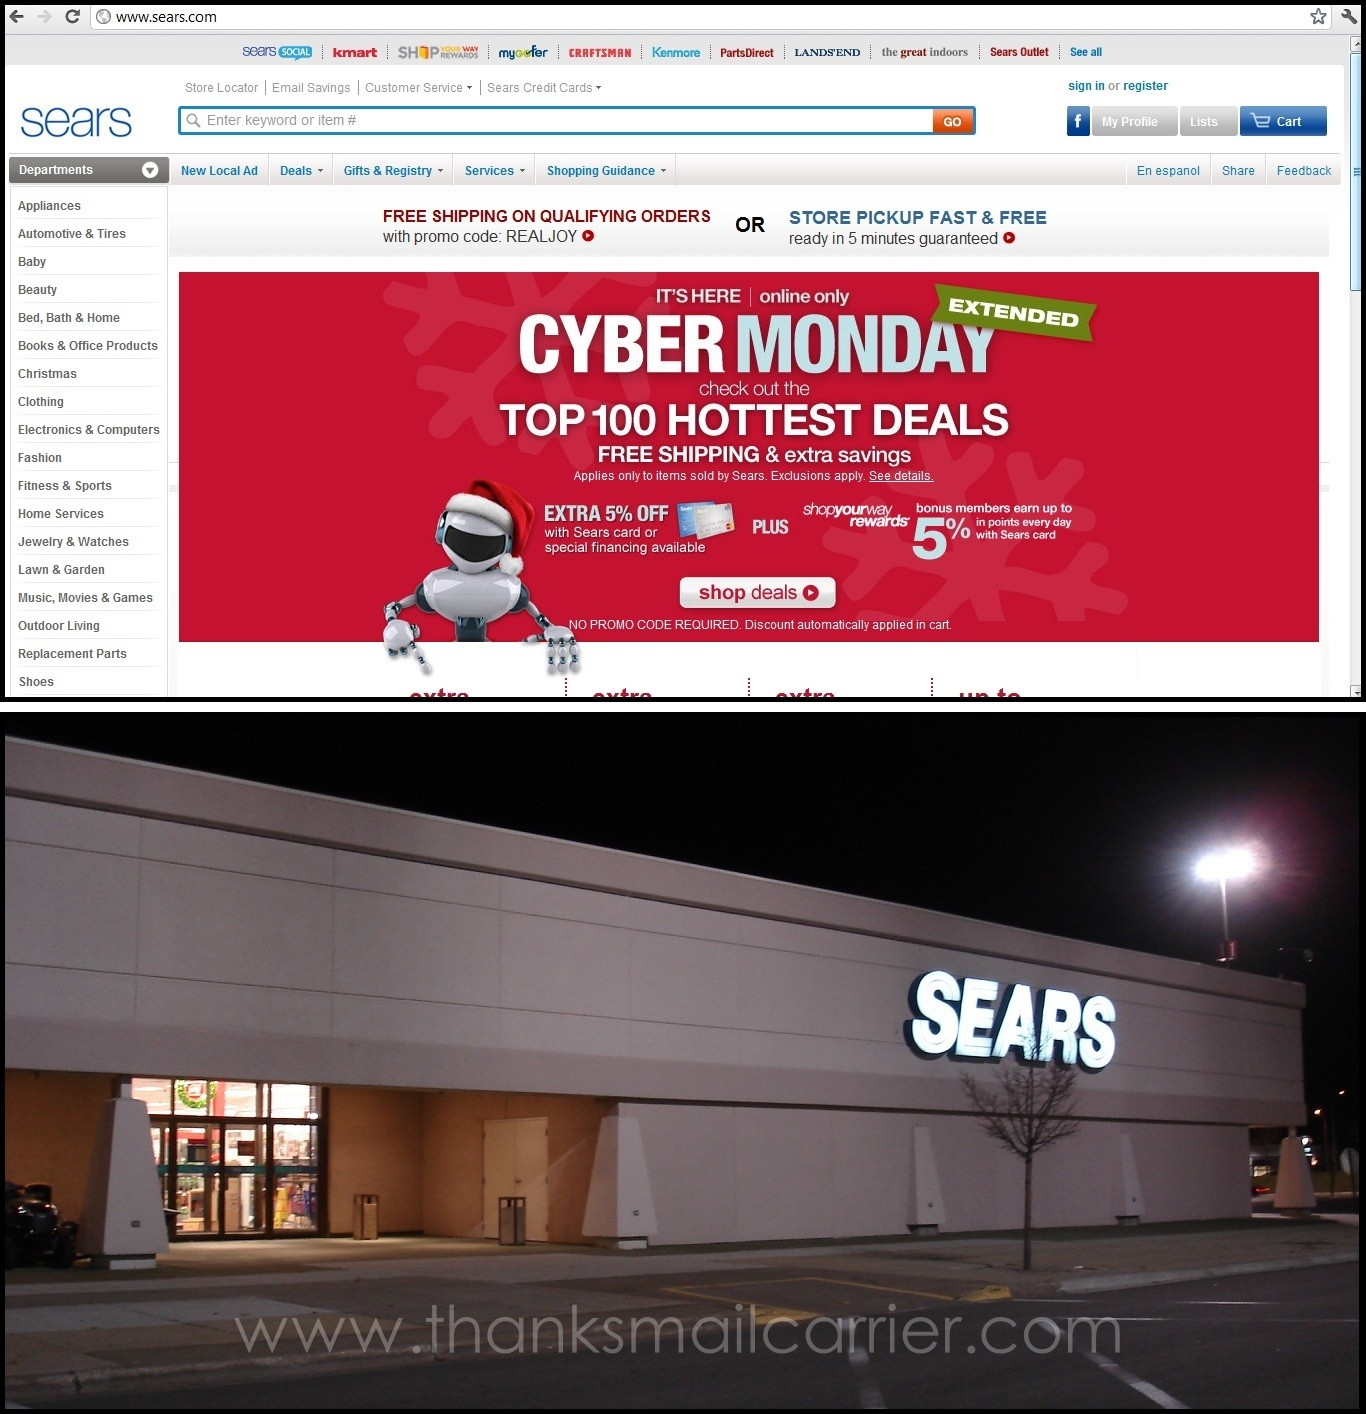 Sears Shopyourway gives you the best online deals. Get the best online offers on appliances, clothing, shoes, jewelry, beauty products, tools and more.